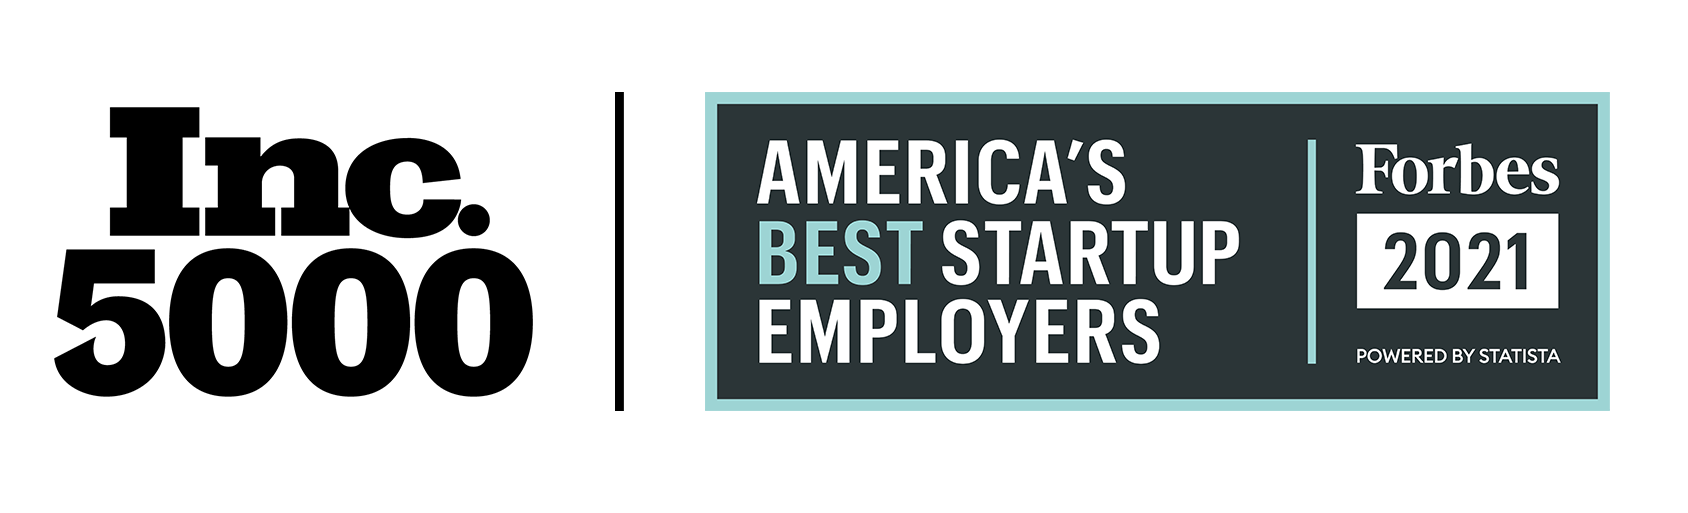 2021 forbes best startup employers